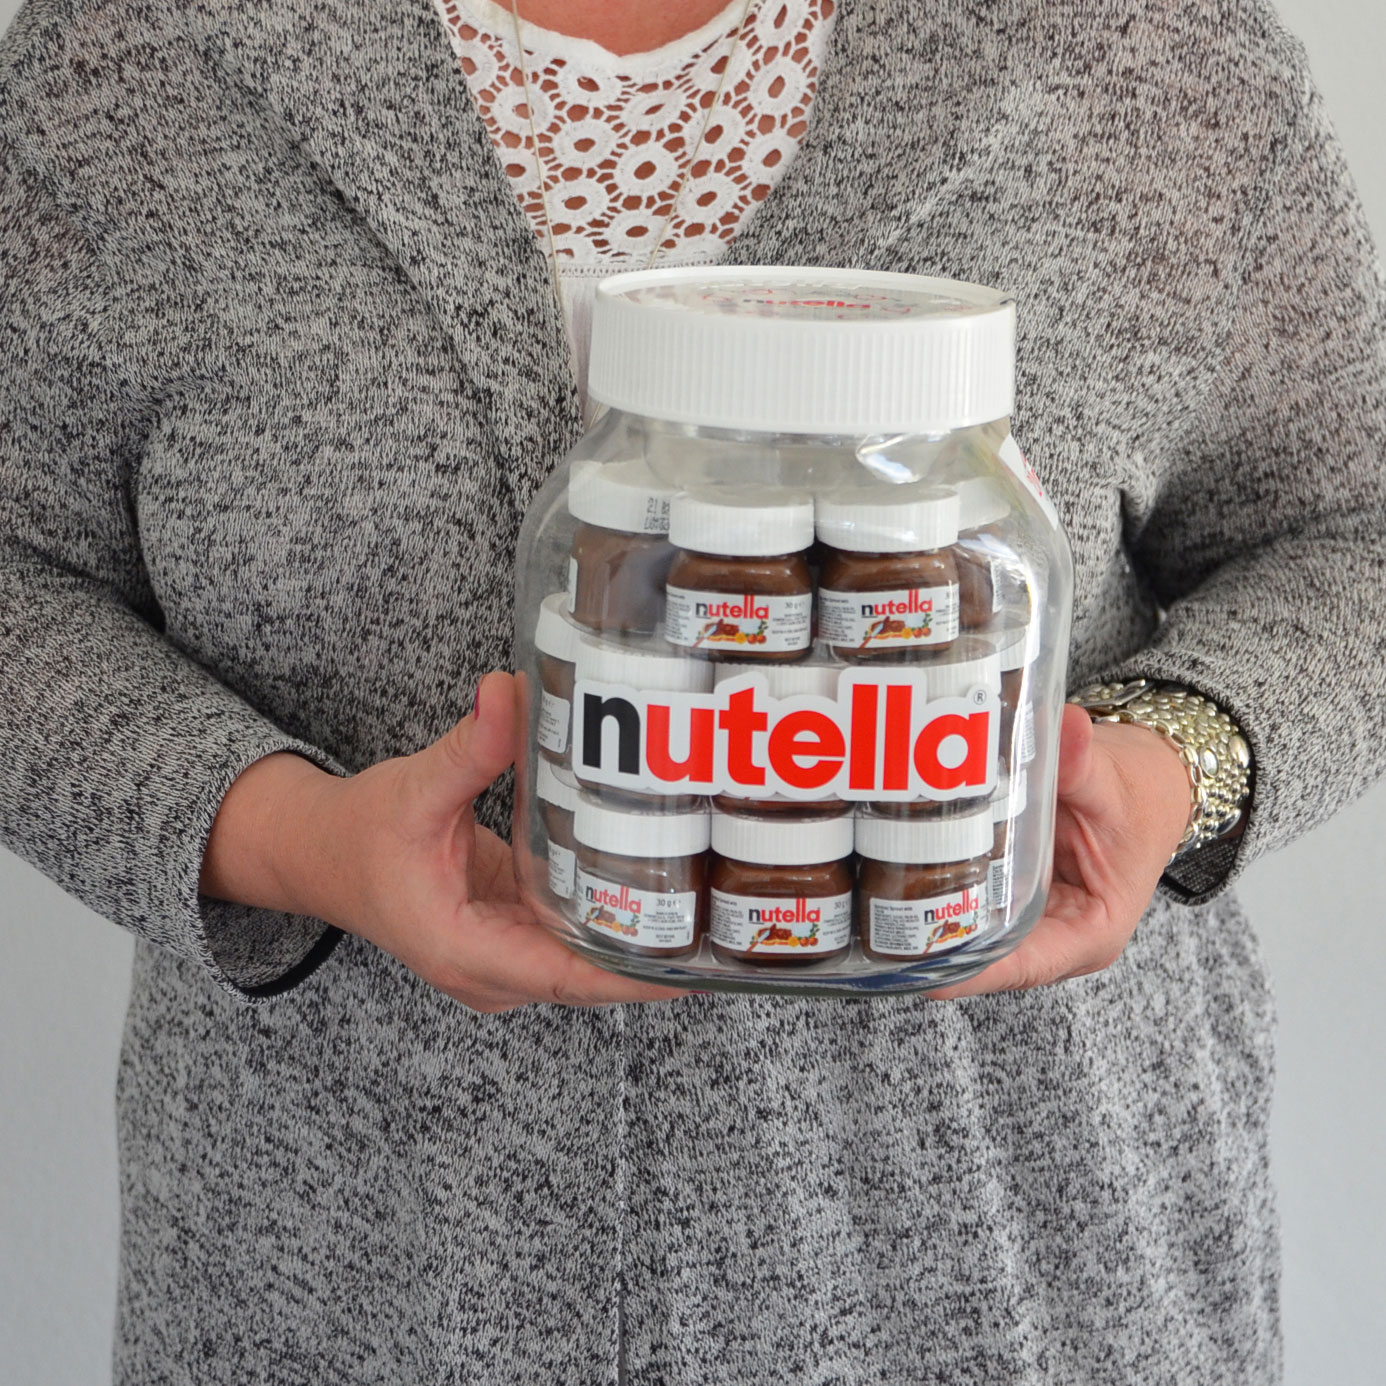 nutella world big jar xxl 21x30g online kaufen im world of sweets shop. Black Bedroom Furniture Sets. Home Design Ideas